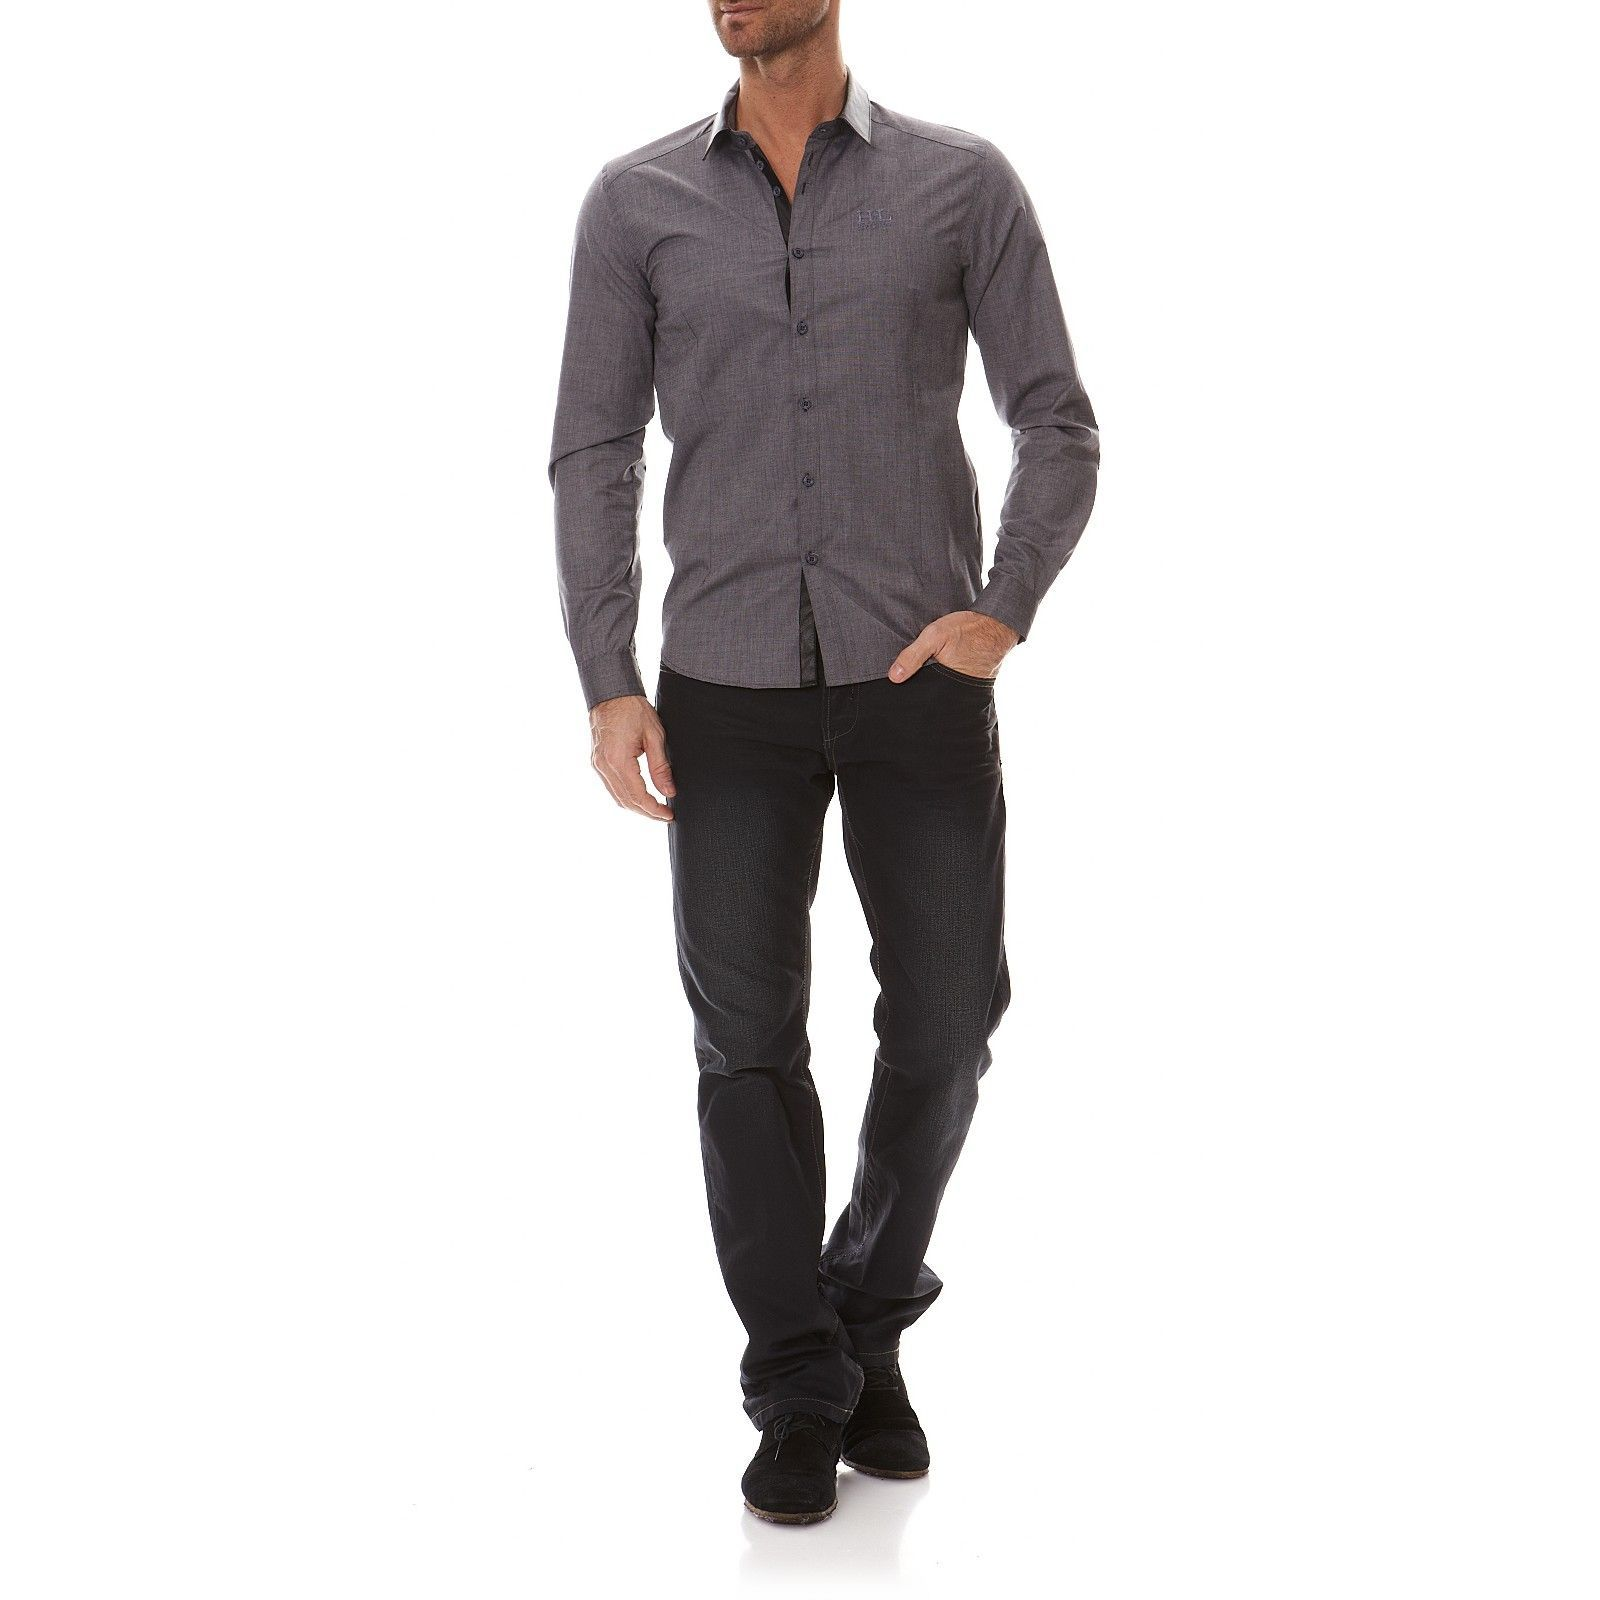 Hope Life Manches Anthracite Longues Homme NuhanChemise V N hdtQxCsr